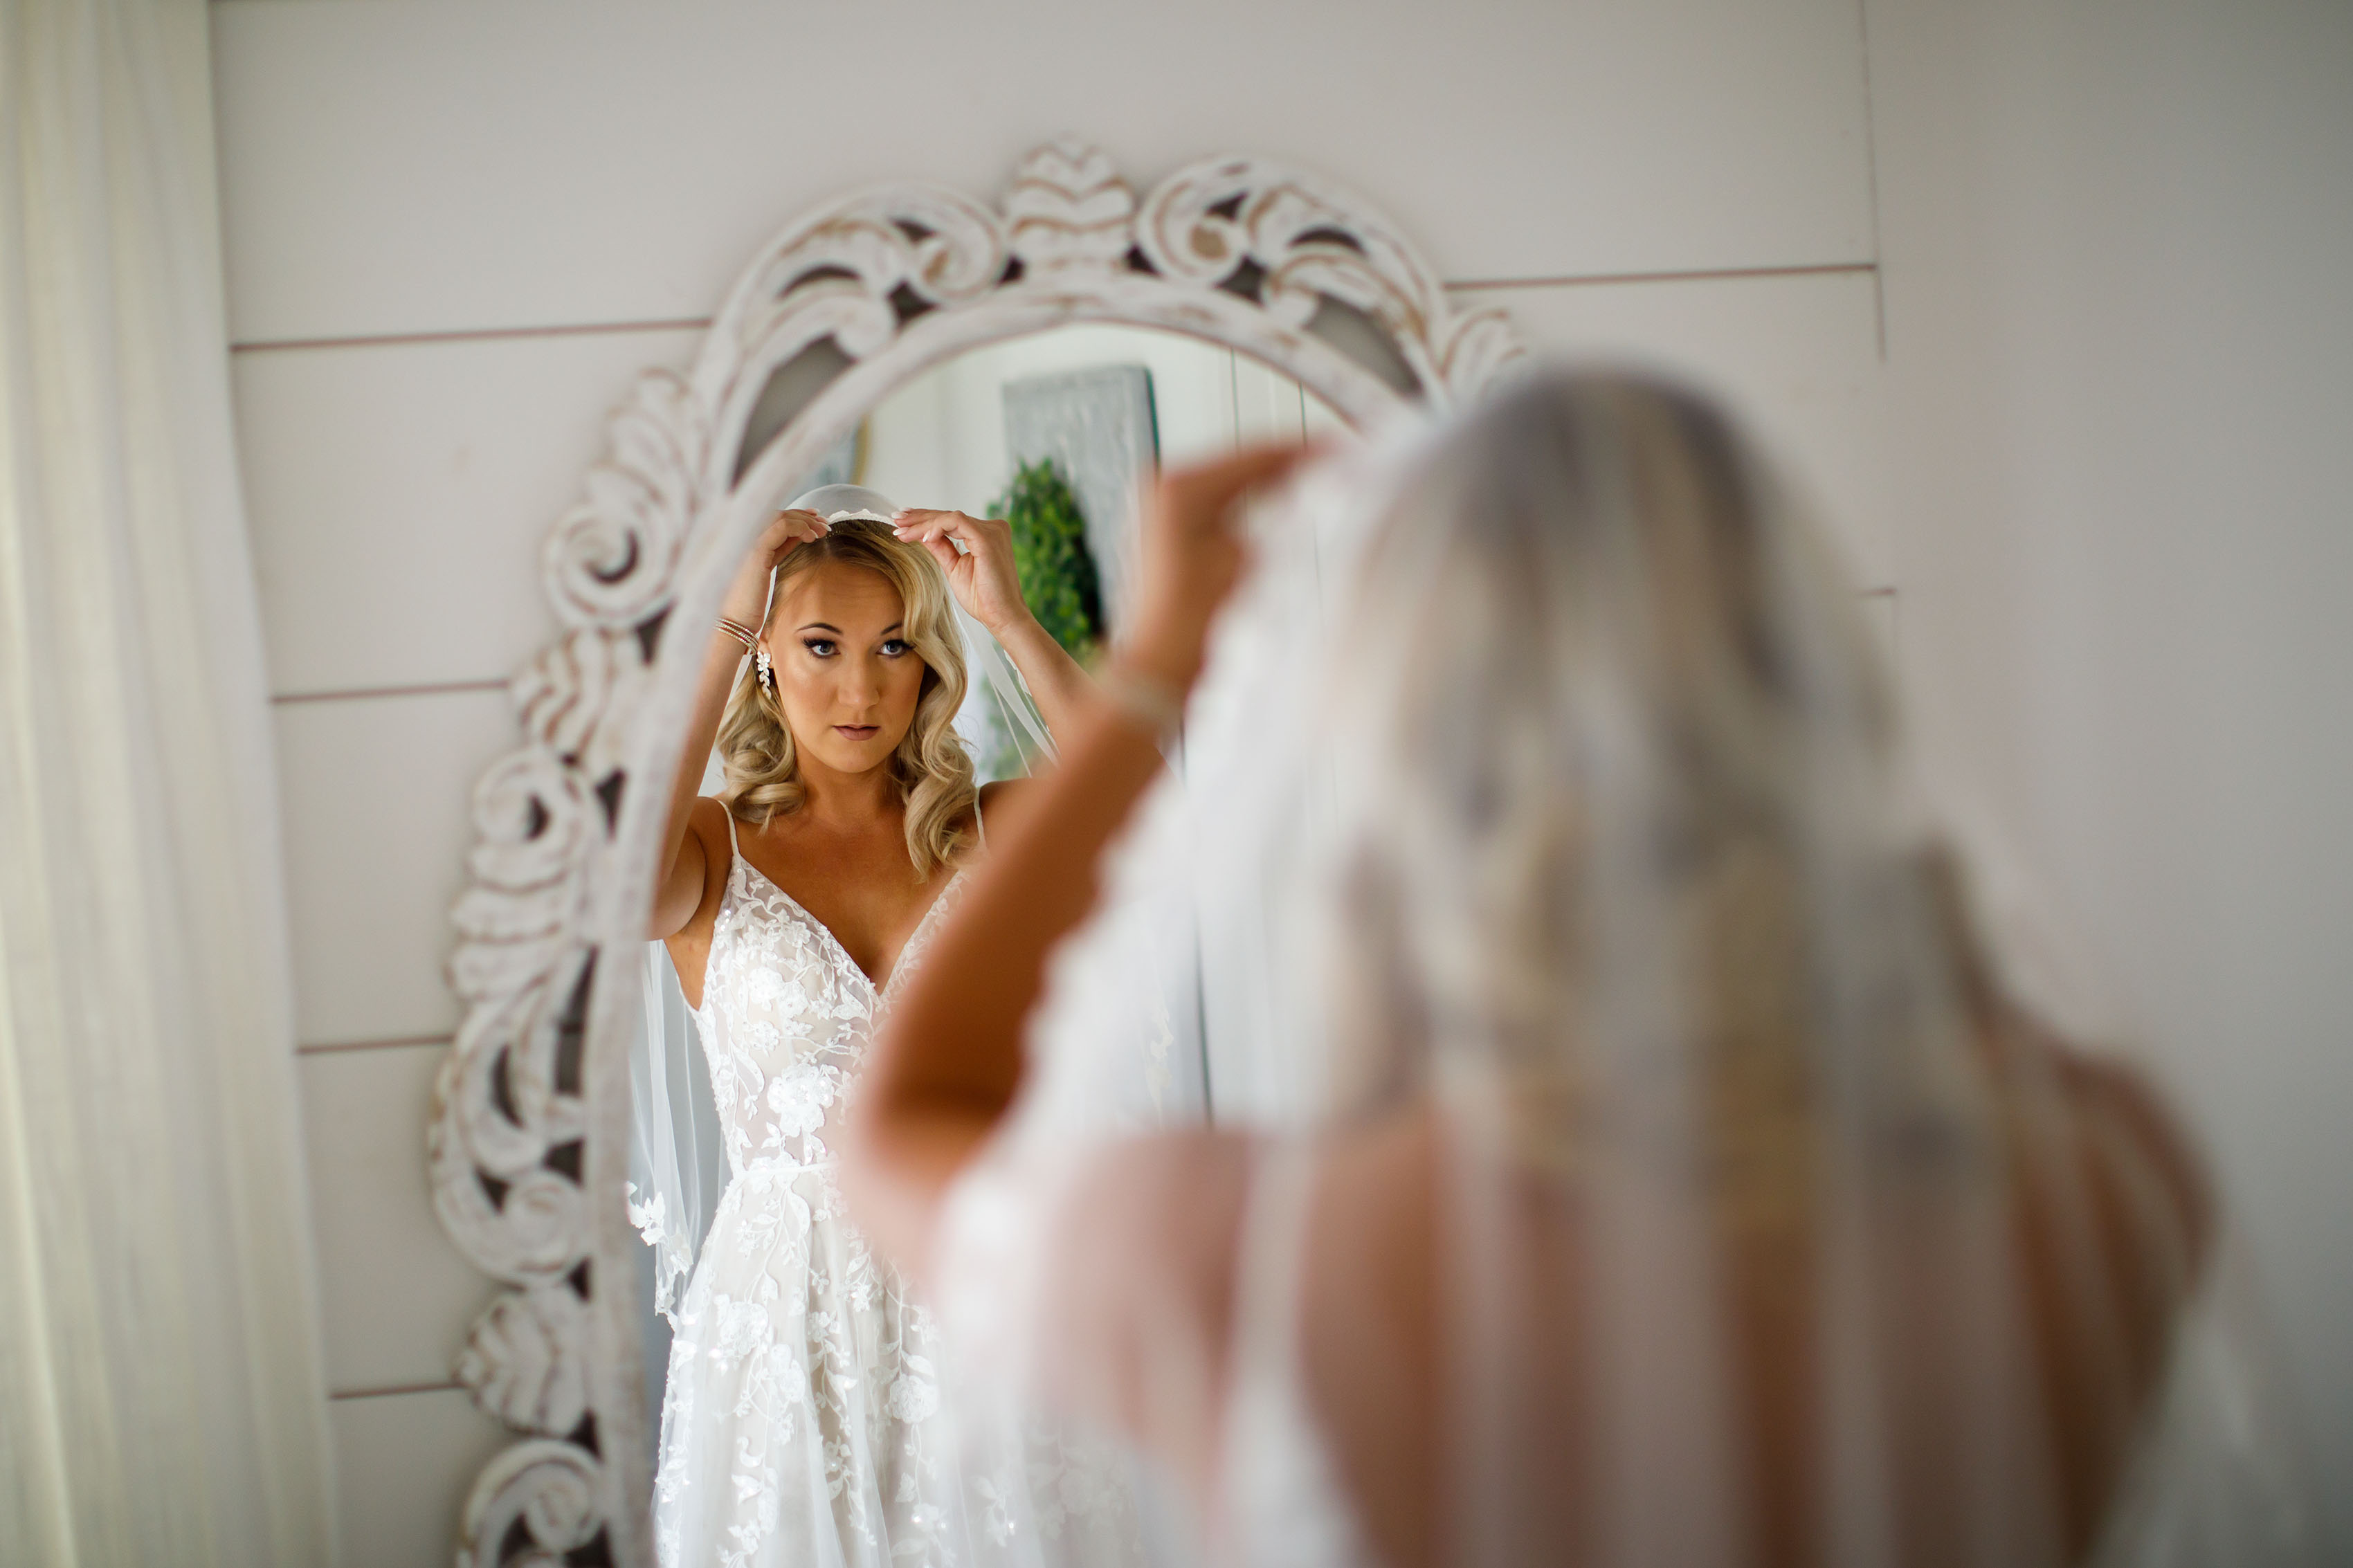 Bride looks in a fintage mirror and adjusts her veil